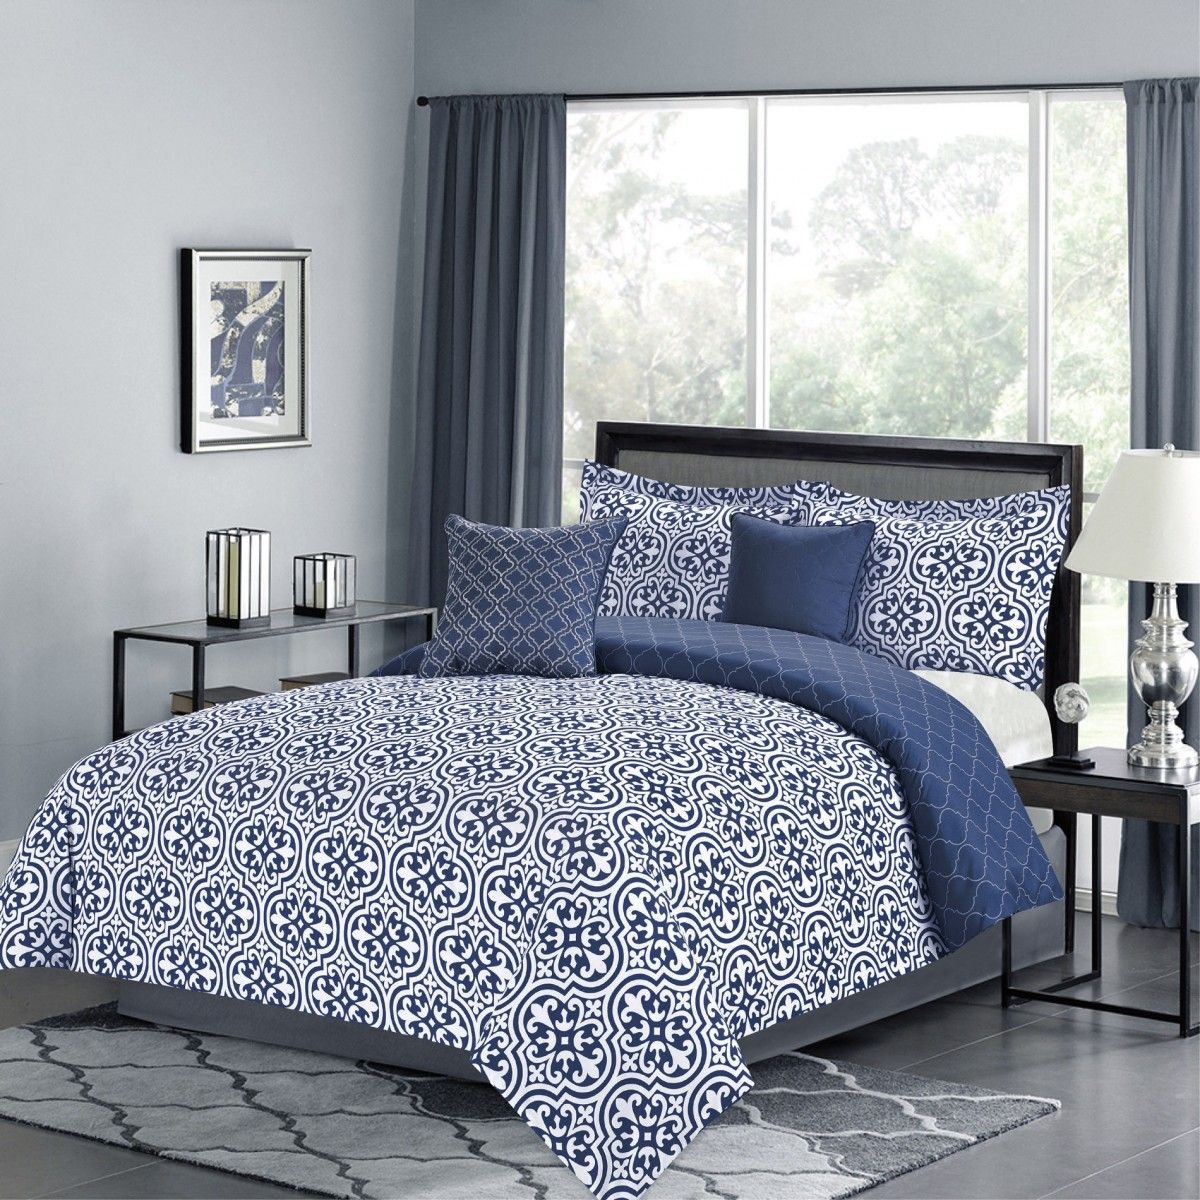 crest home kendrick queen comforter  pc bedding set dark blue  - crest home kendrick queen comforter  pc bedding set dark blue quatrefoilmedallion